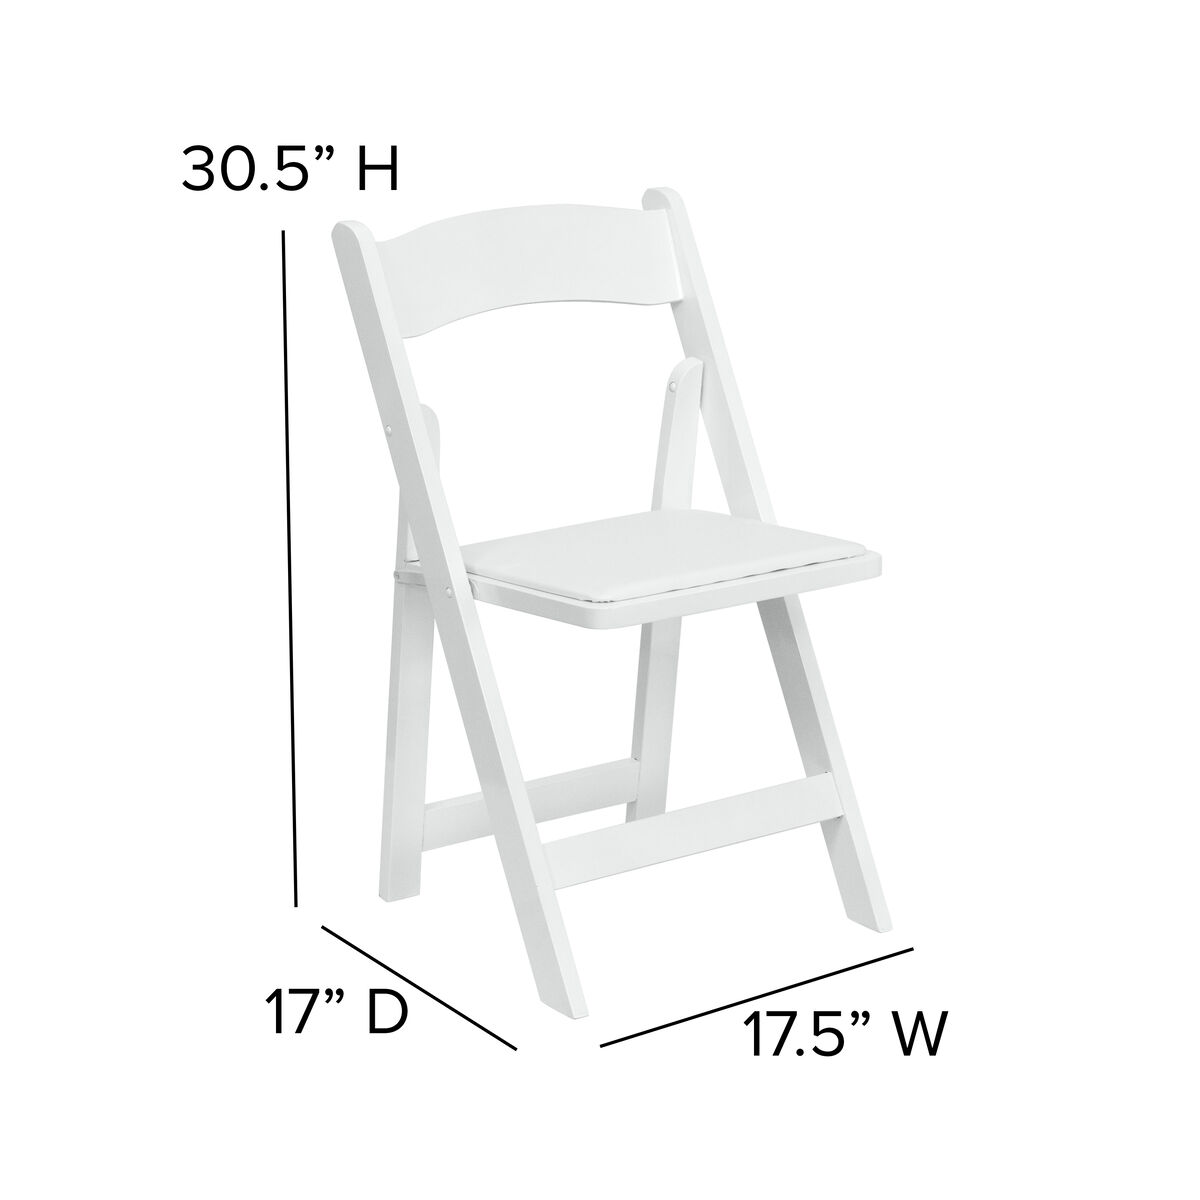 Excellent Hercules Series White Wood Folding Chair With Vinyl Padded Seat Ibusinesslaw Wood Chair Design Ideas Ibusinesslaworg